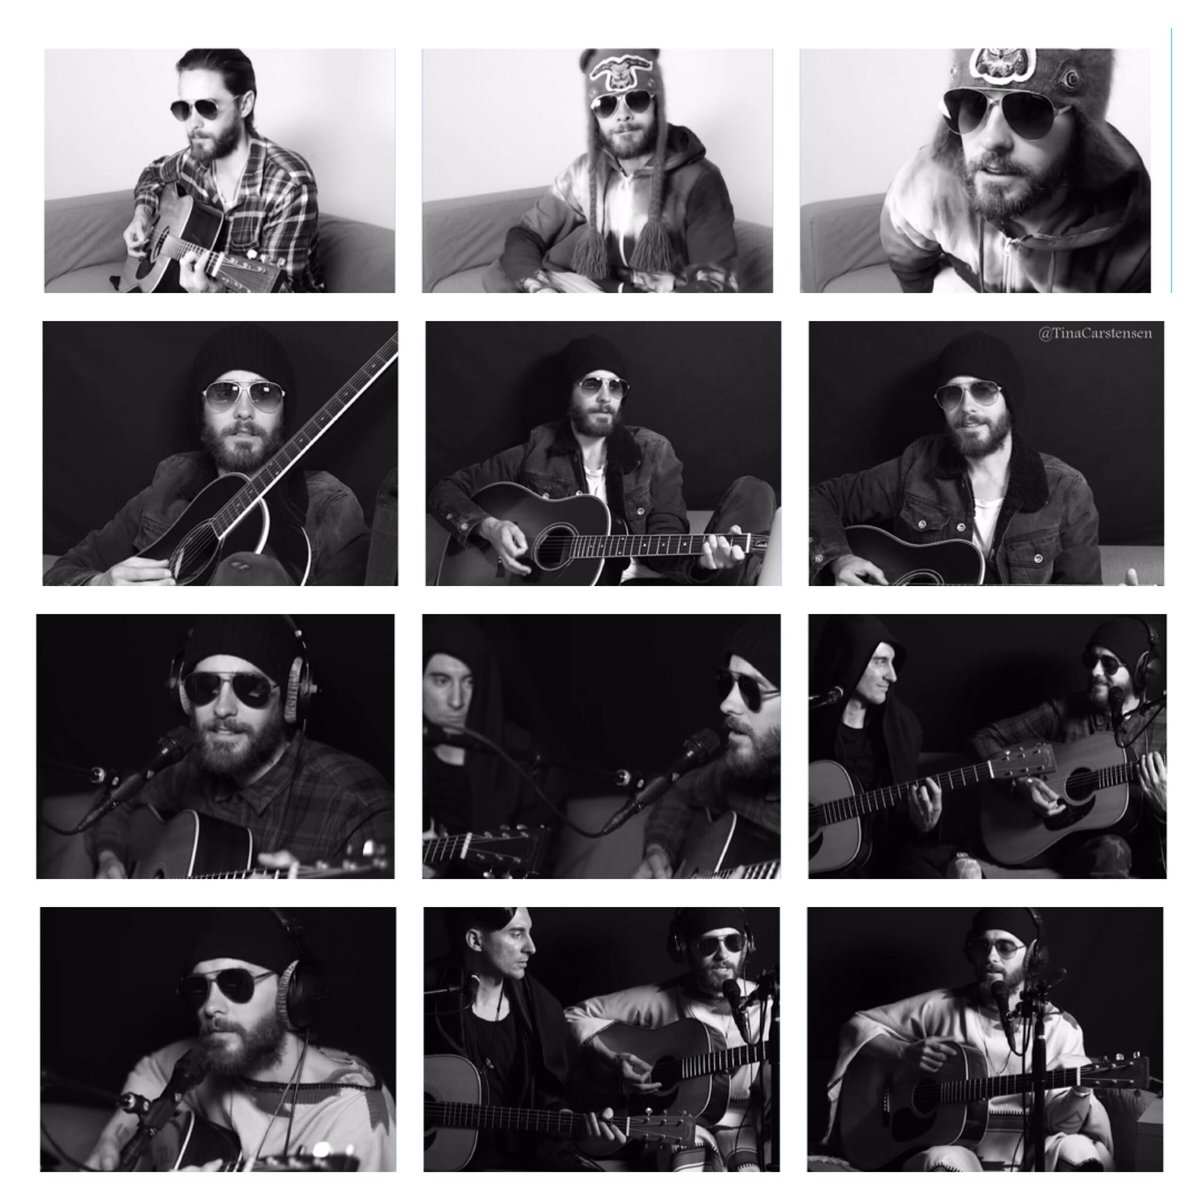 3 #VyRTviolets 1 soundcheck 1 live event - all within 2 weeks & only on @VyRT!   THANK YOU so much @JaredLeto!